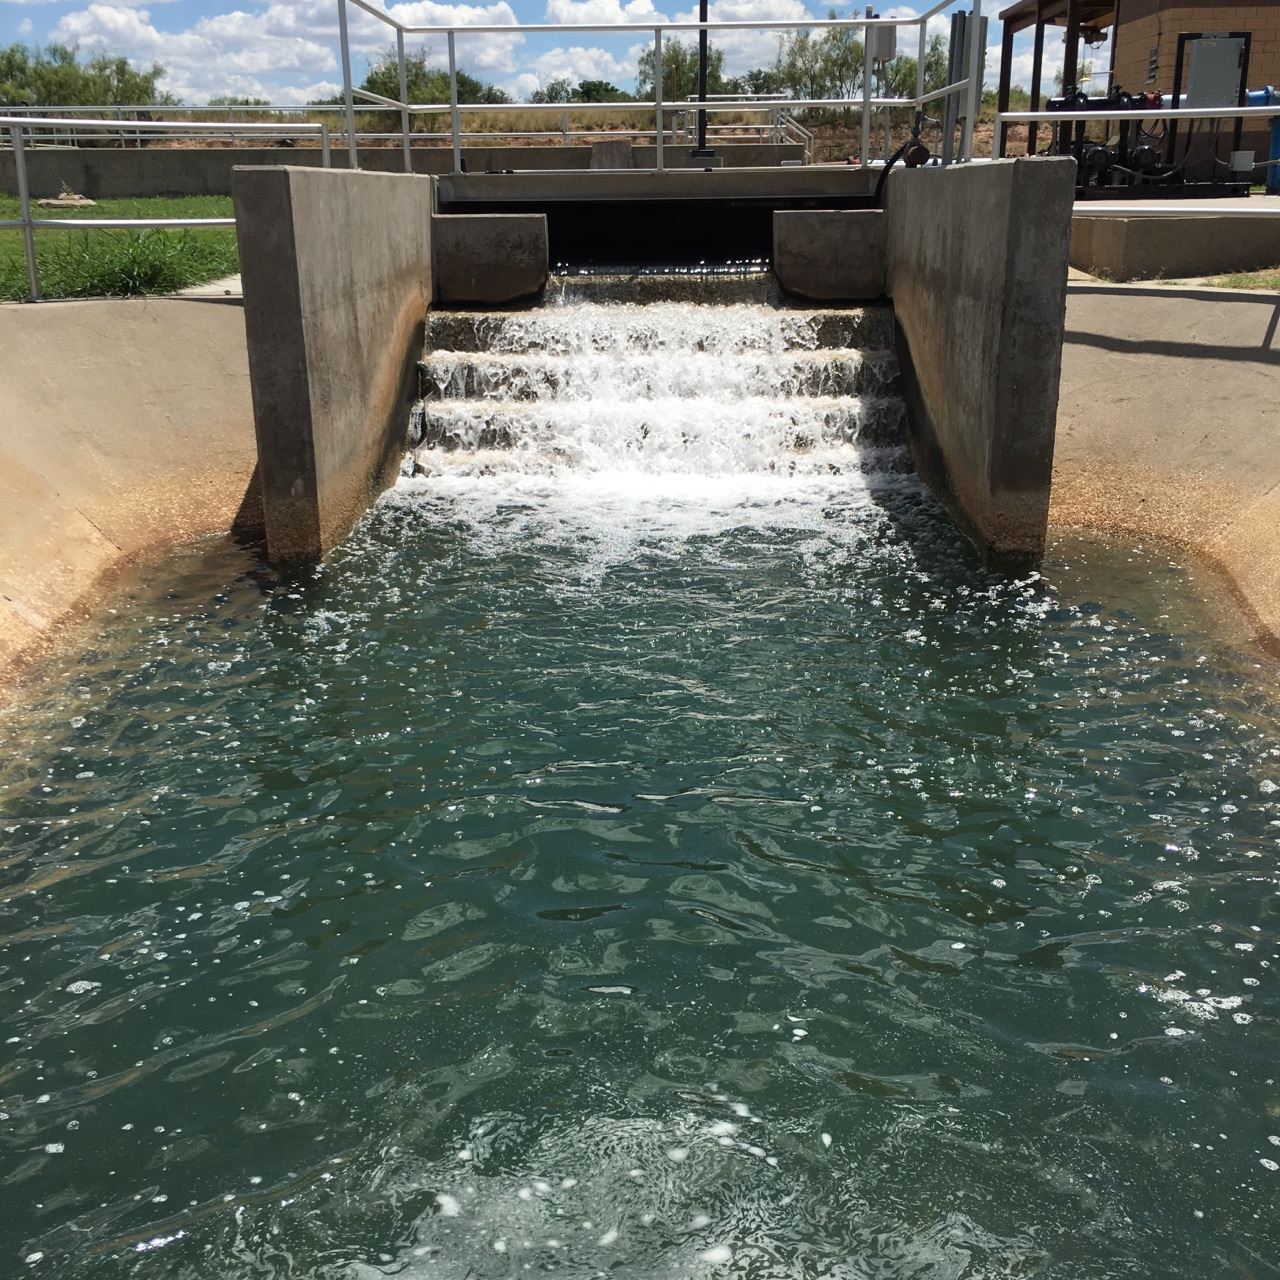 A picture of water cascading from the final effluent at the cascade